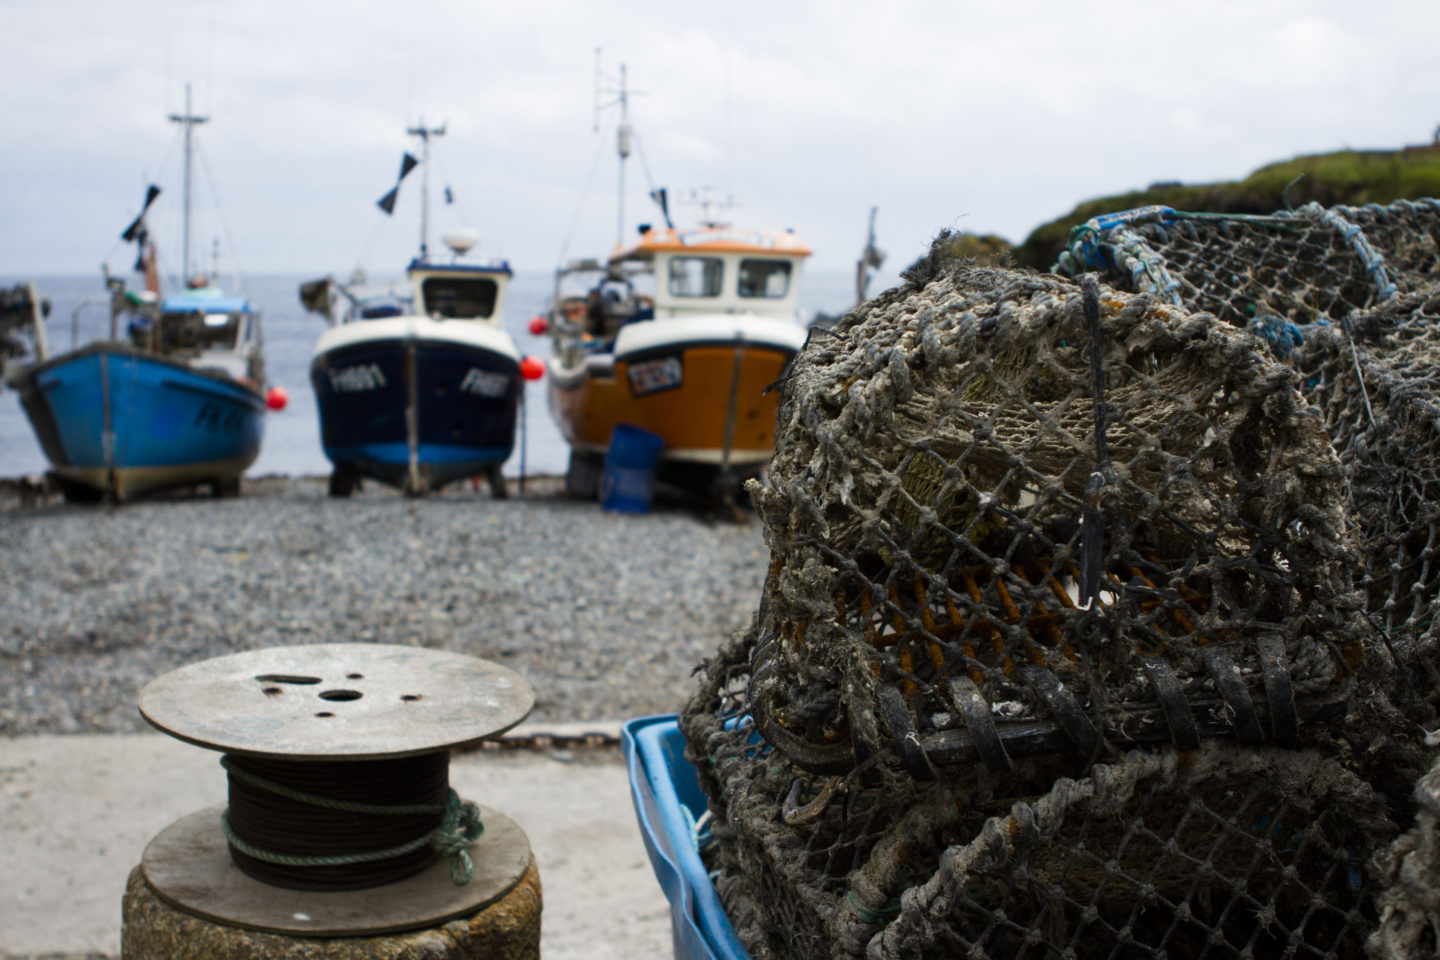 Scallop dredgers accused of sabotaging creel fishing gear 8